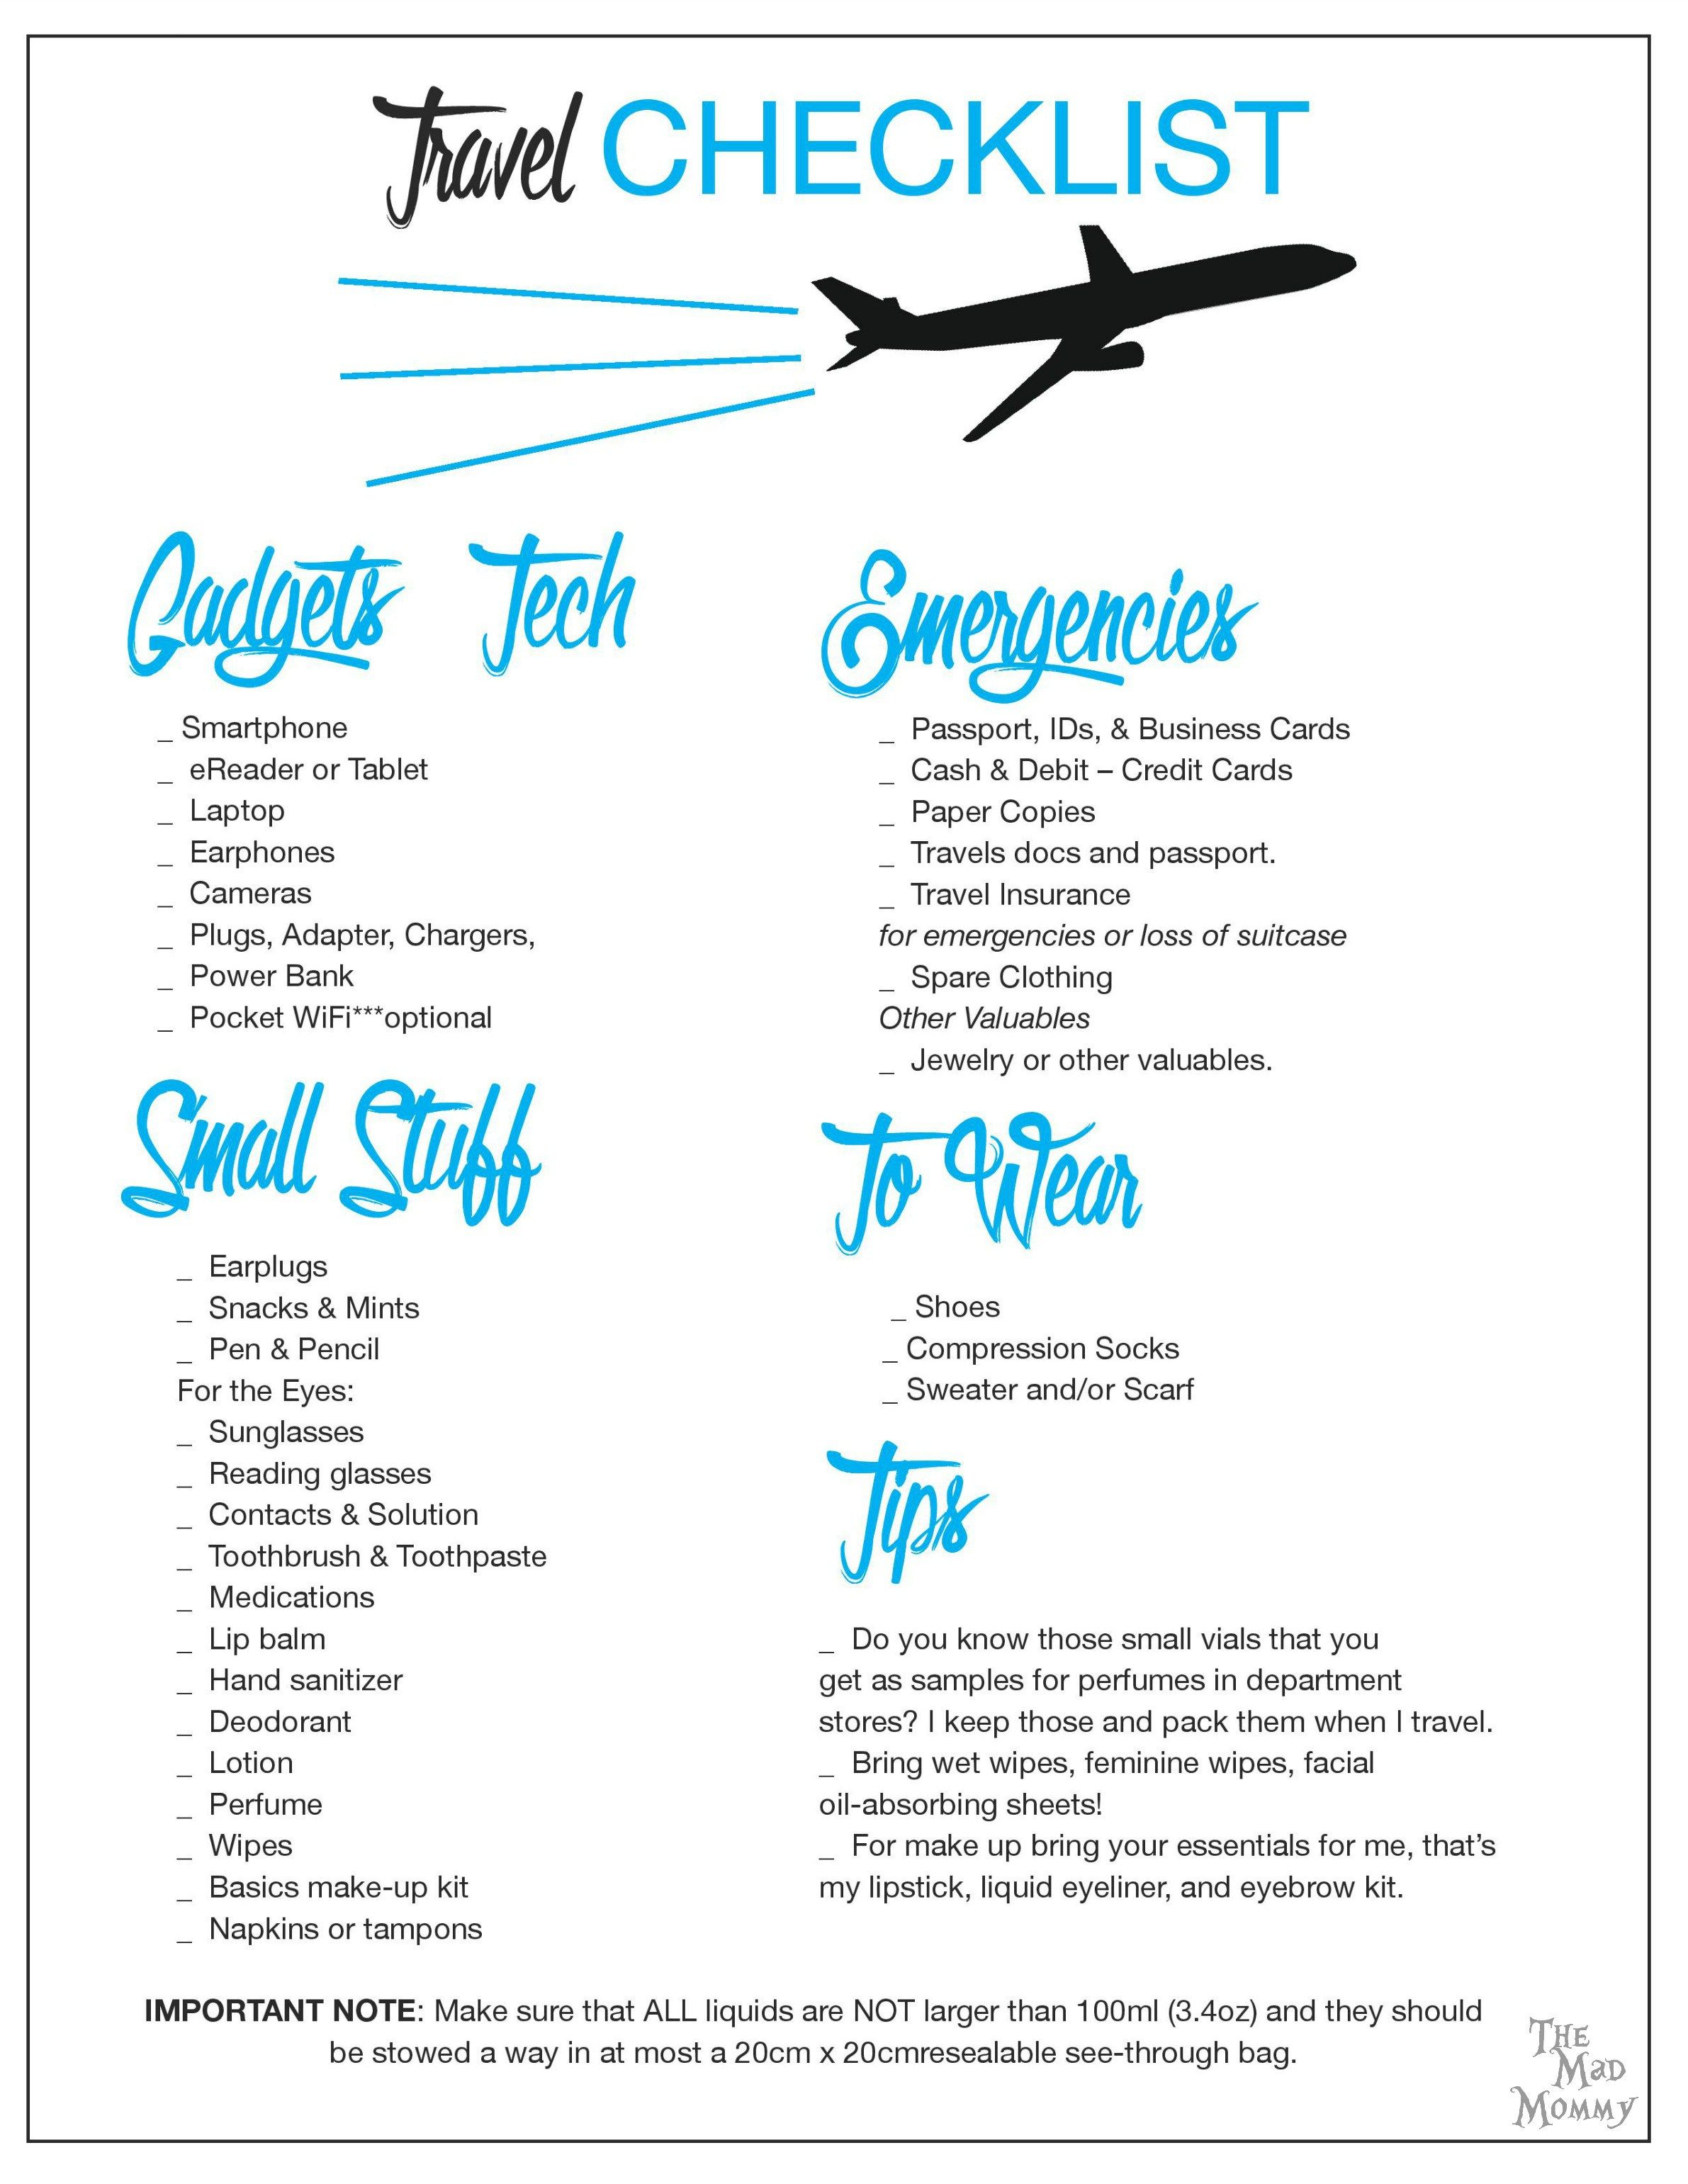 One Bag Travel Checklist Printable Travel Checklist Travel